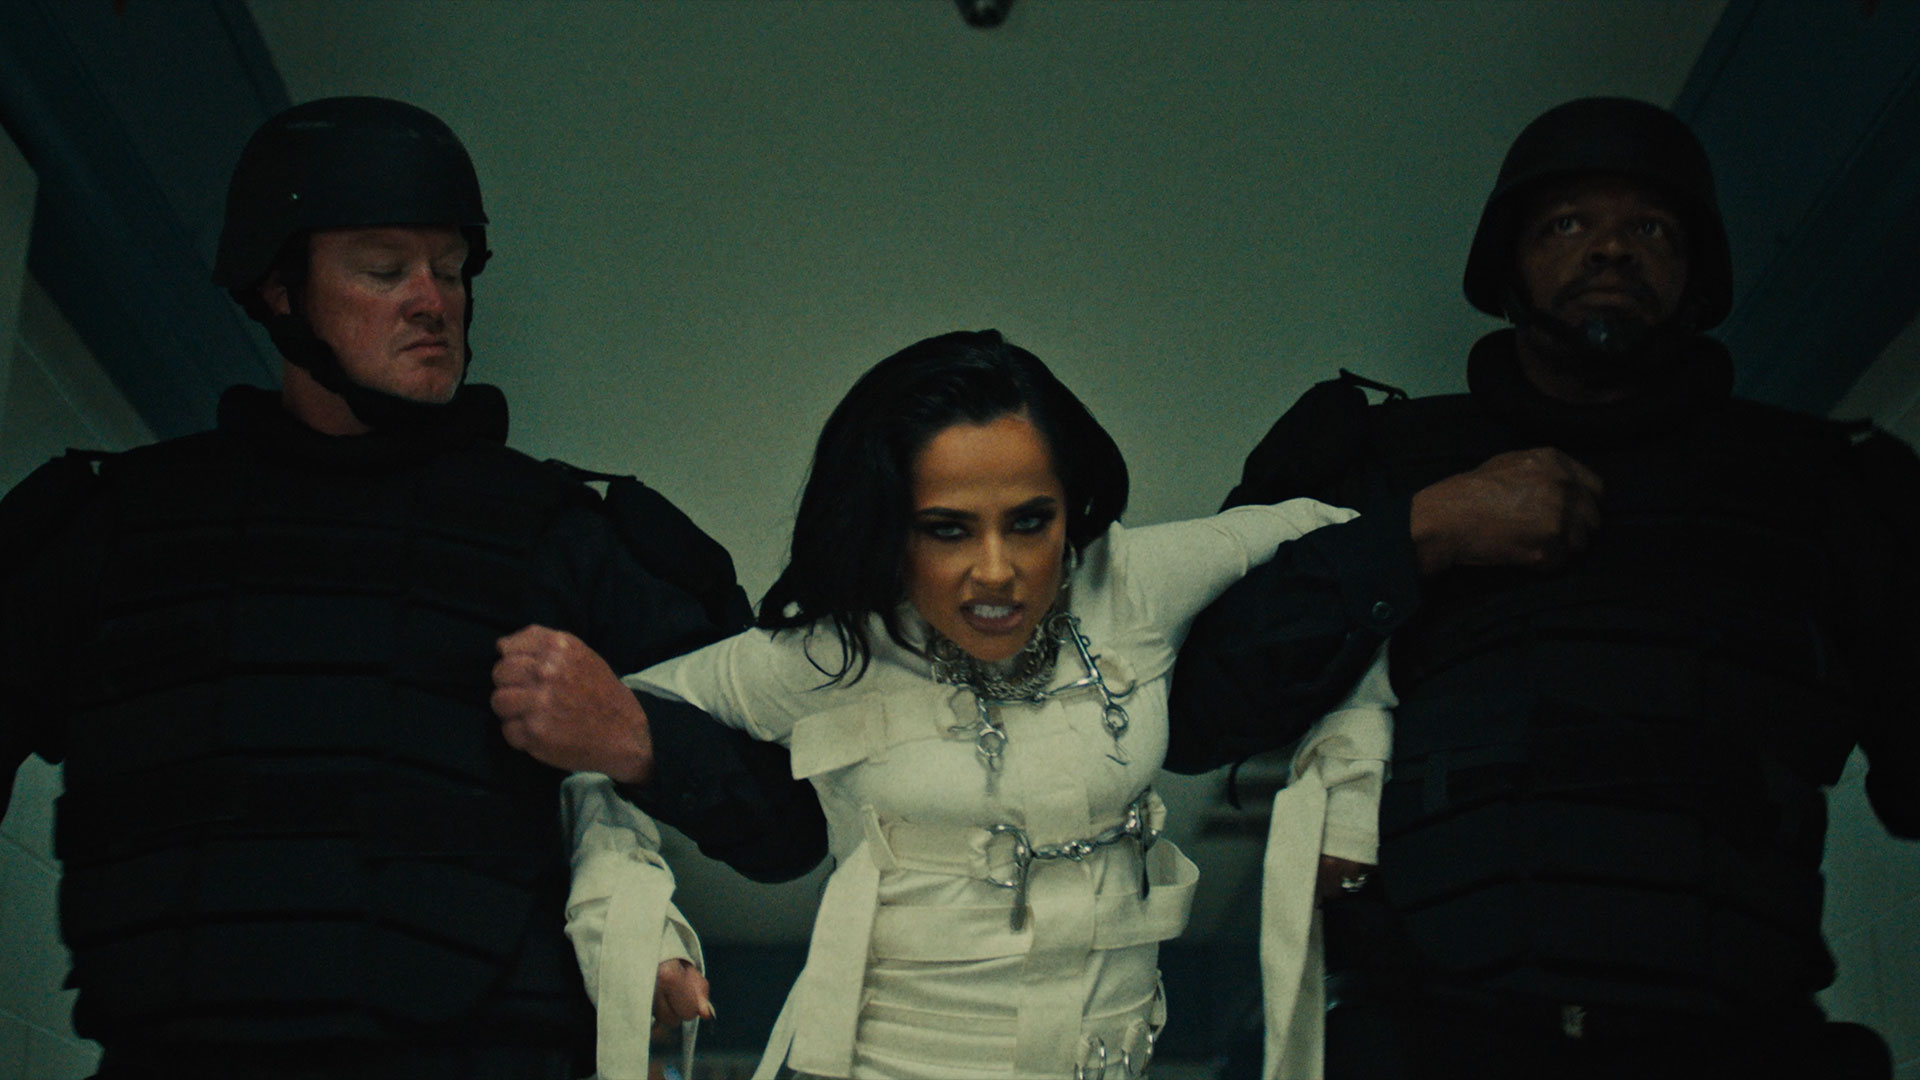 Woman in white being dragged down a hallway by two bodyguards.